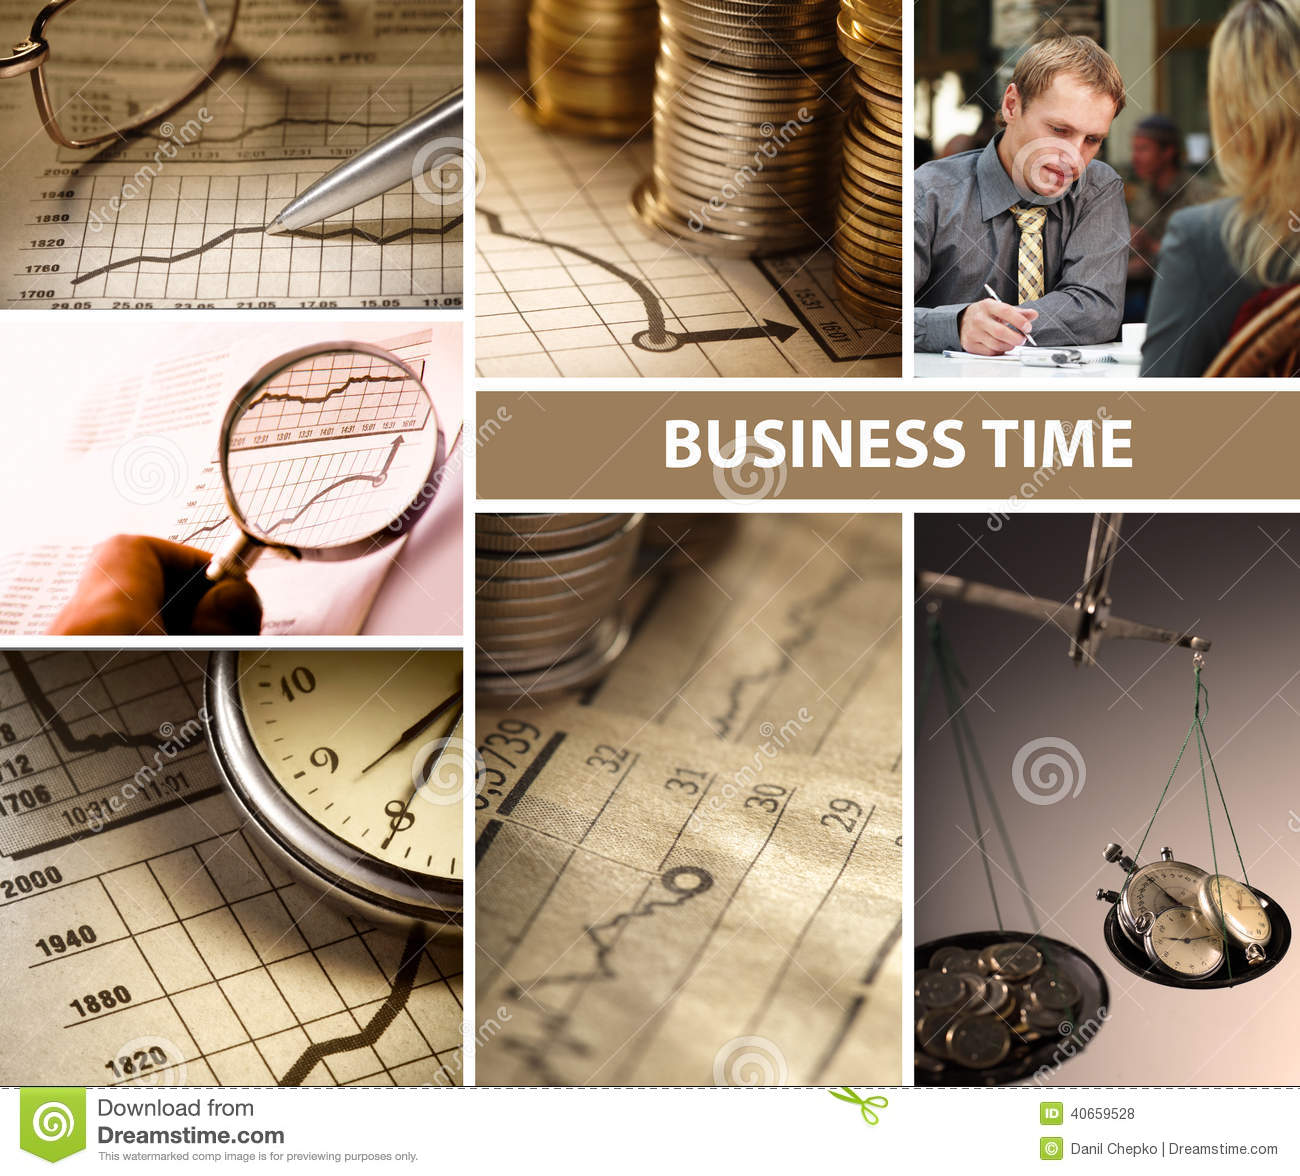 Business time collage